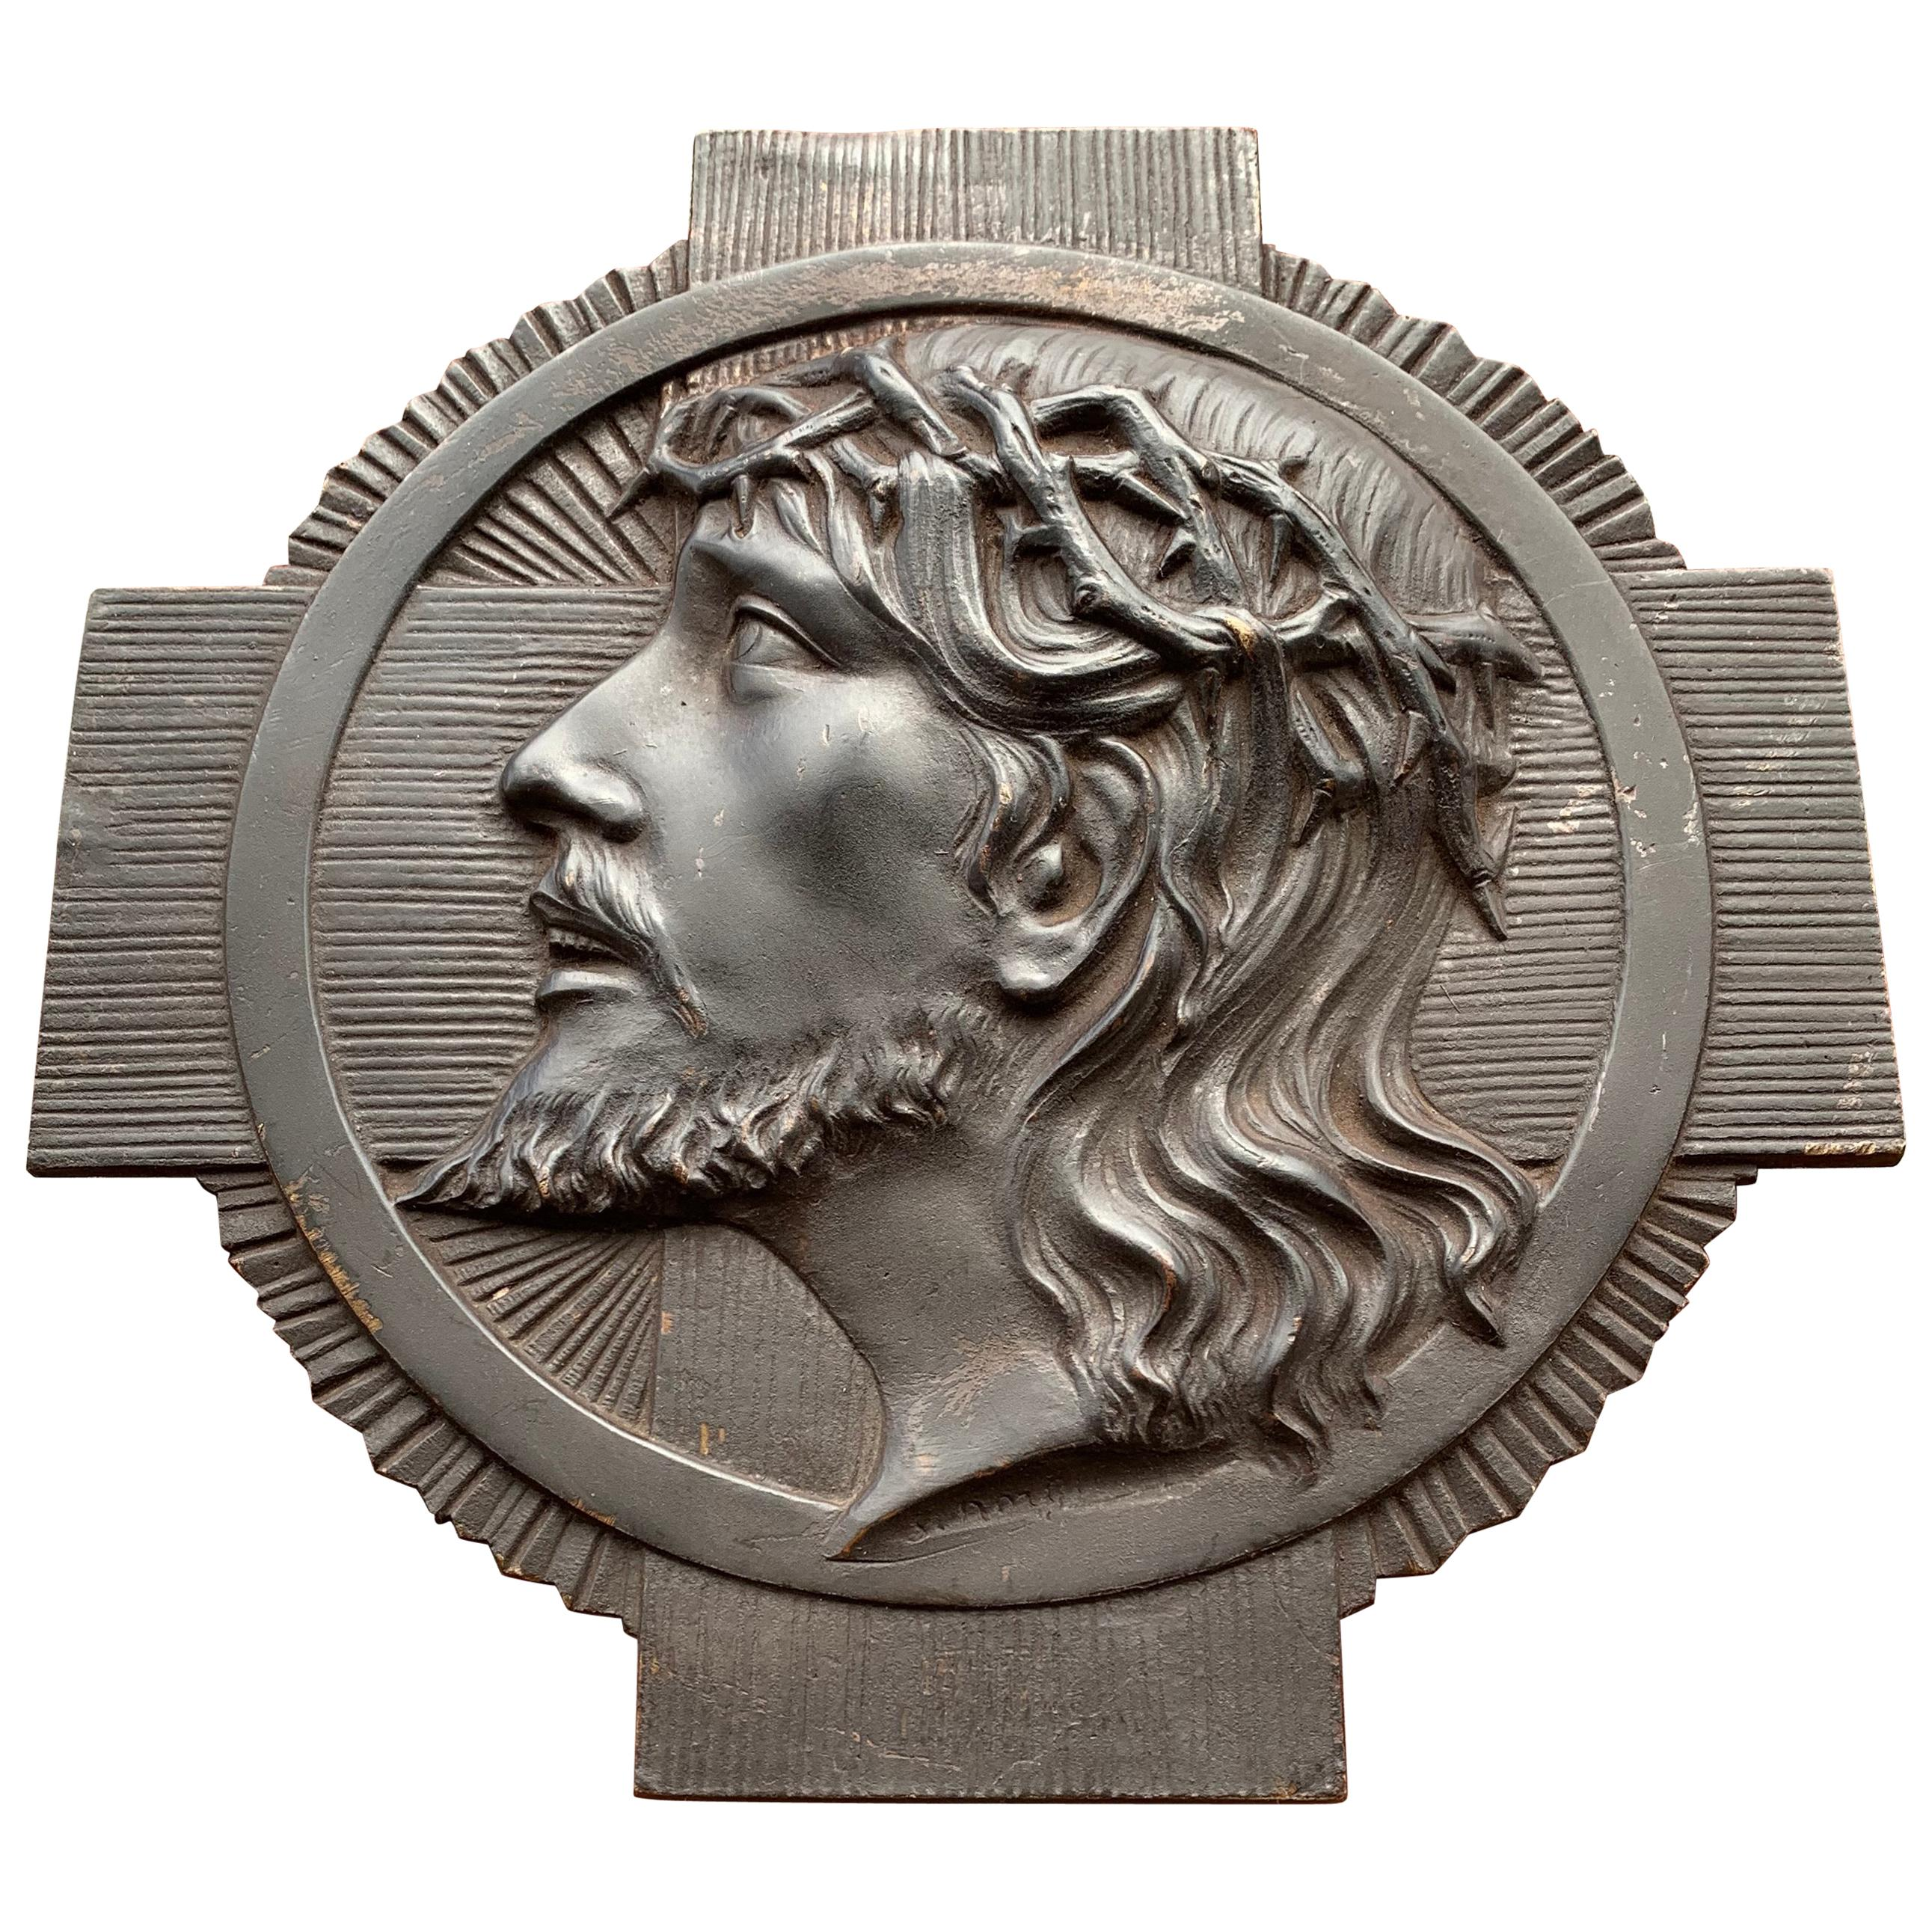 Stylish Early 1900s Art Deco Bronze Wall Plaque of Jesus Christ by S. Norga